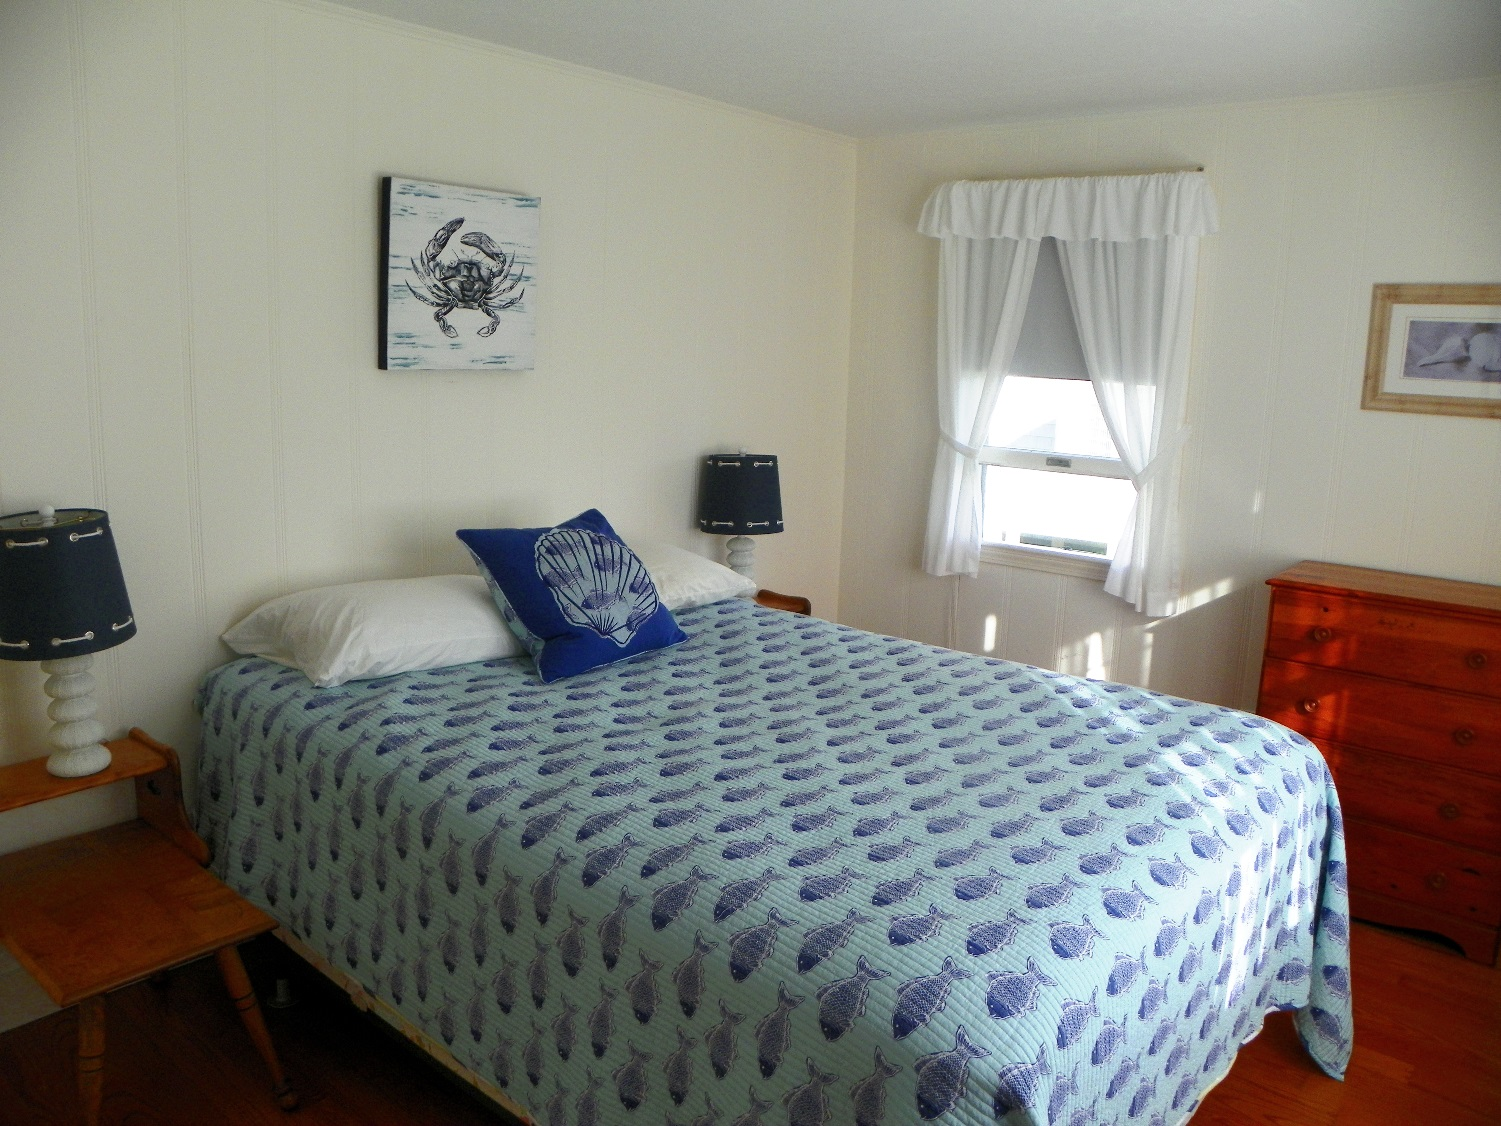 Third Bedroom at 6 Captain Keavy Way, West Dennis, MA for sale by Cranberry Real Estate 508-394-1700